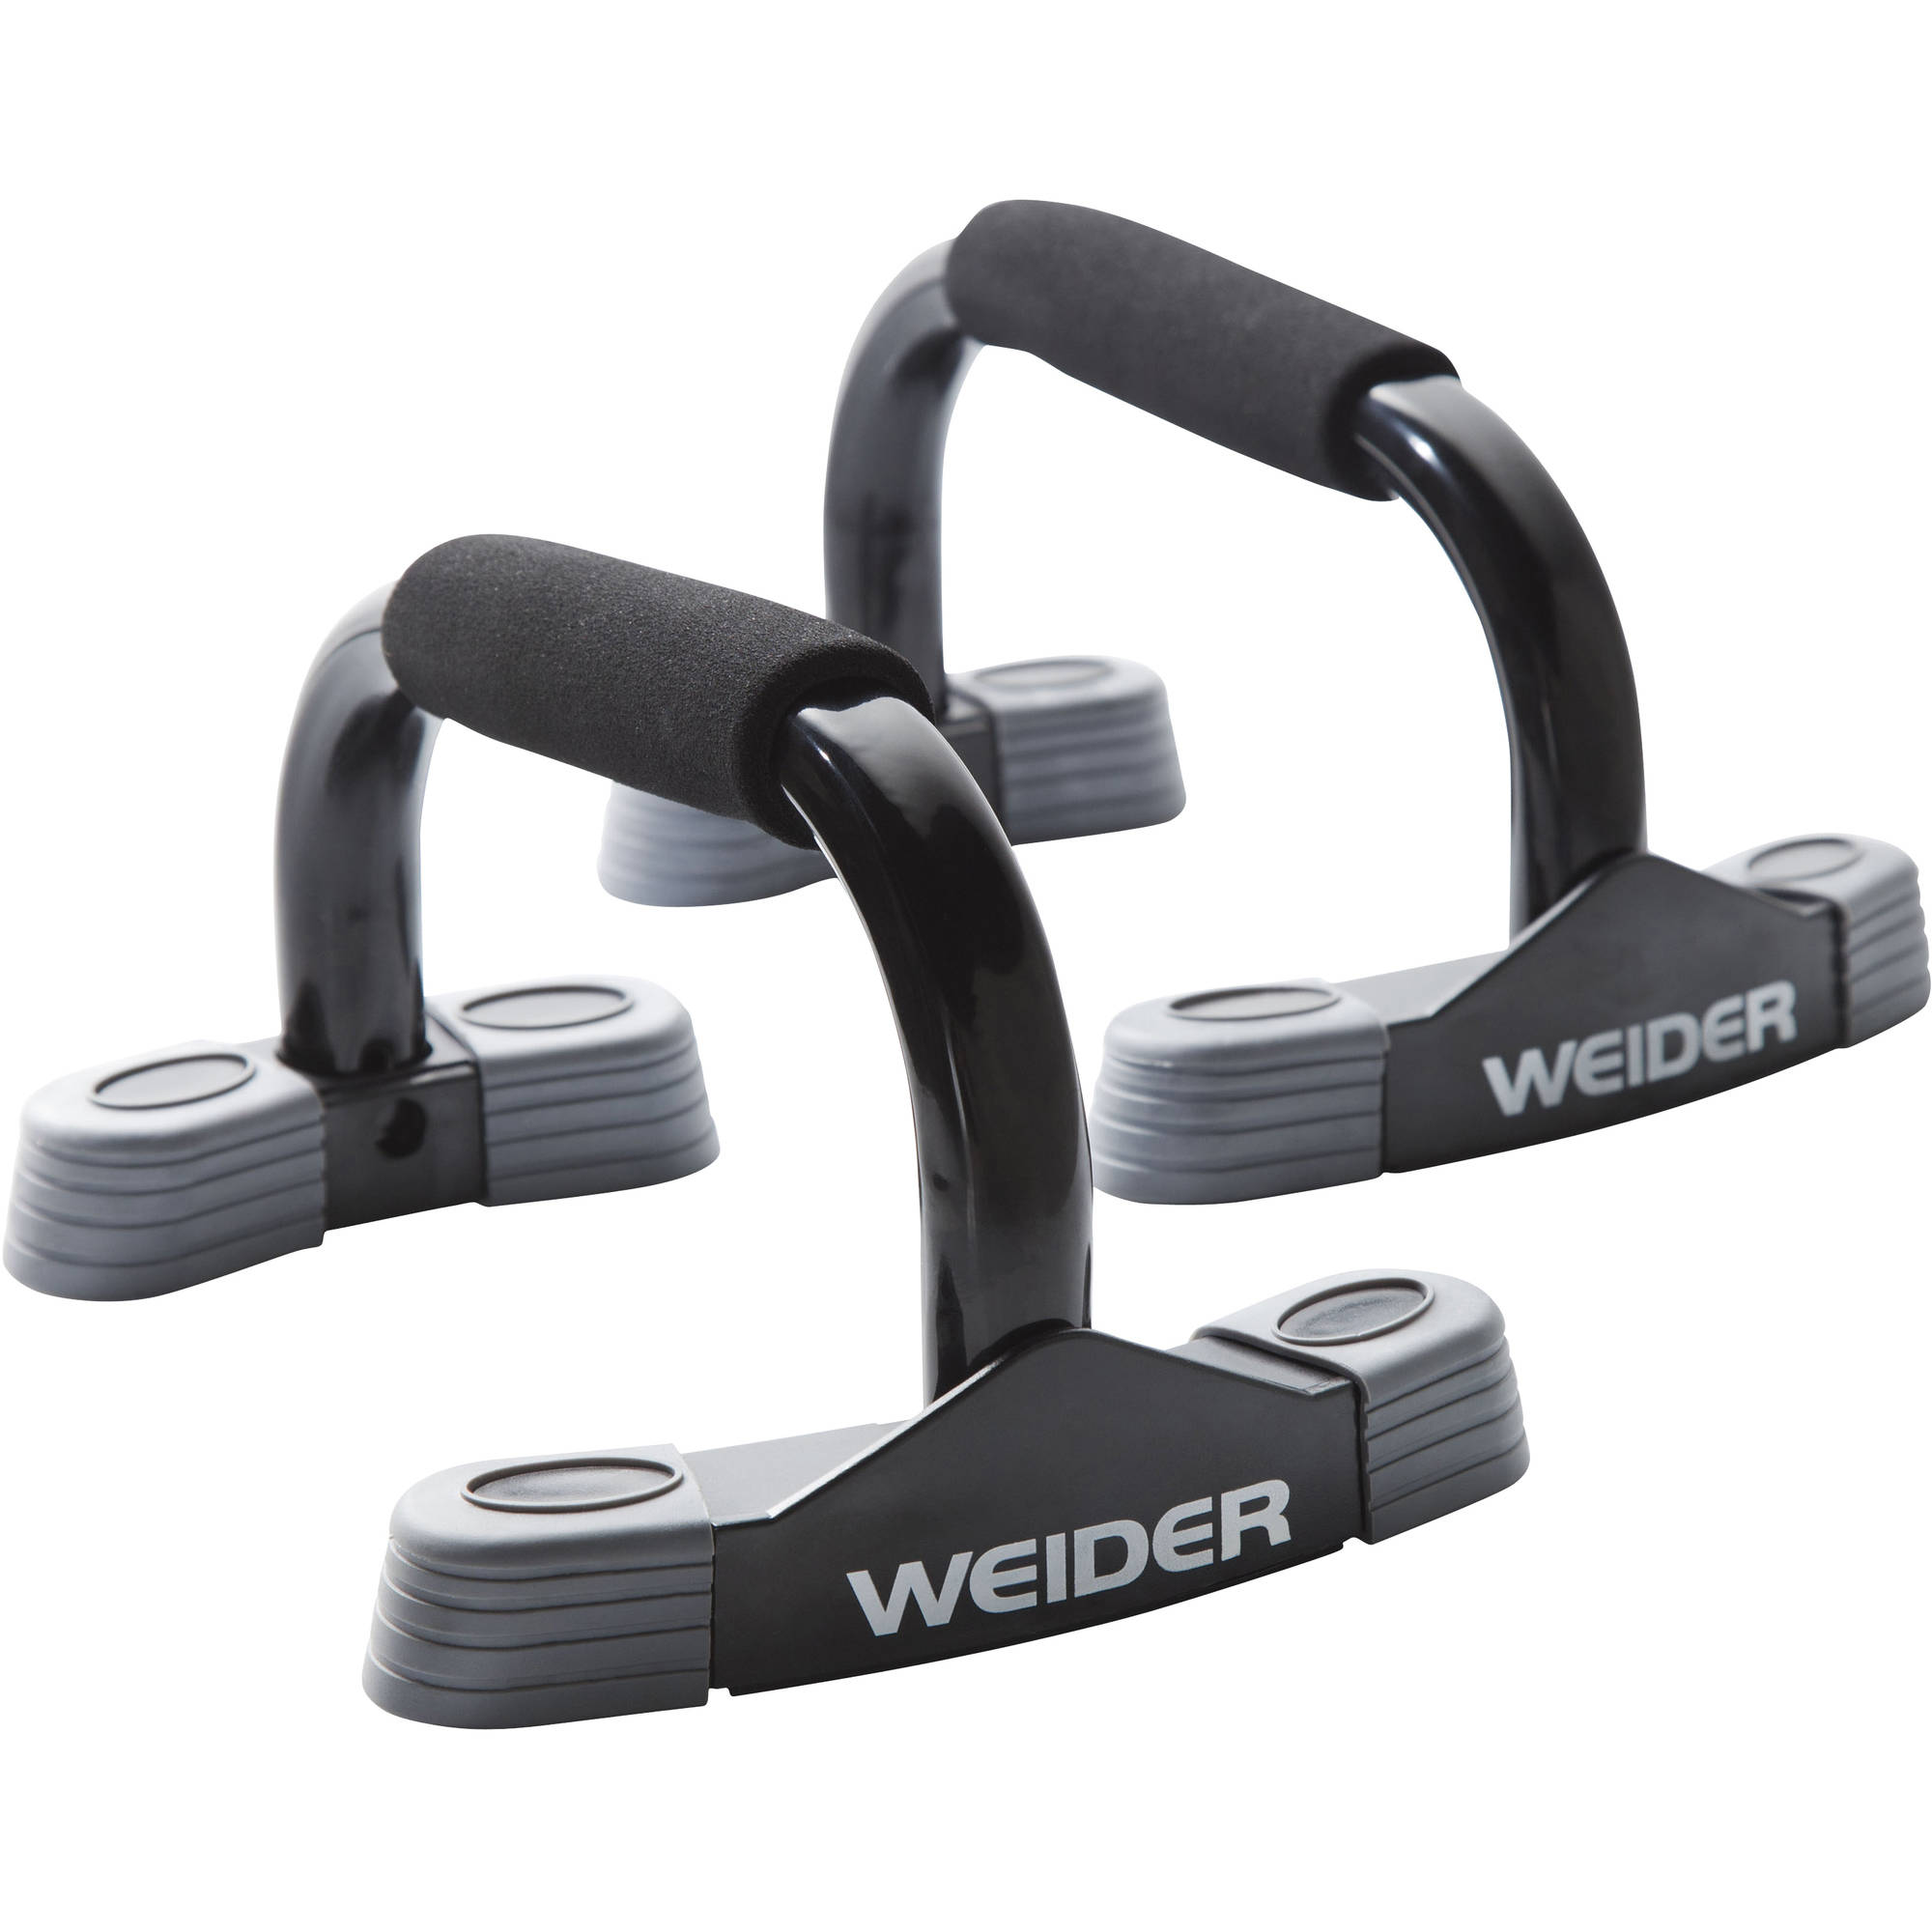 Weider Push Up Stands